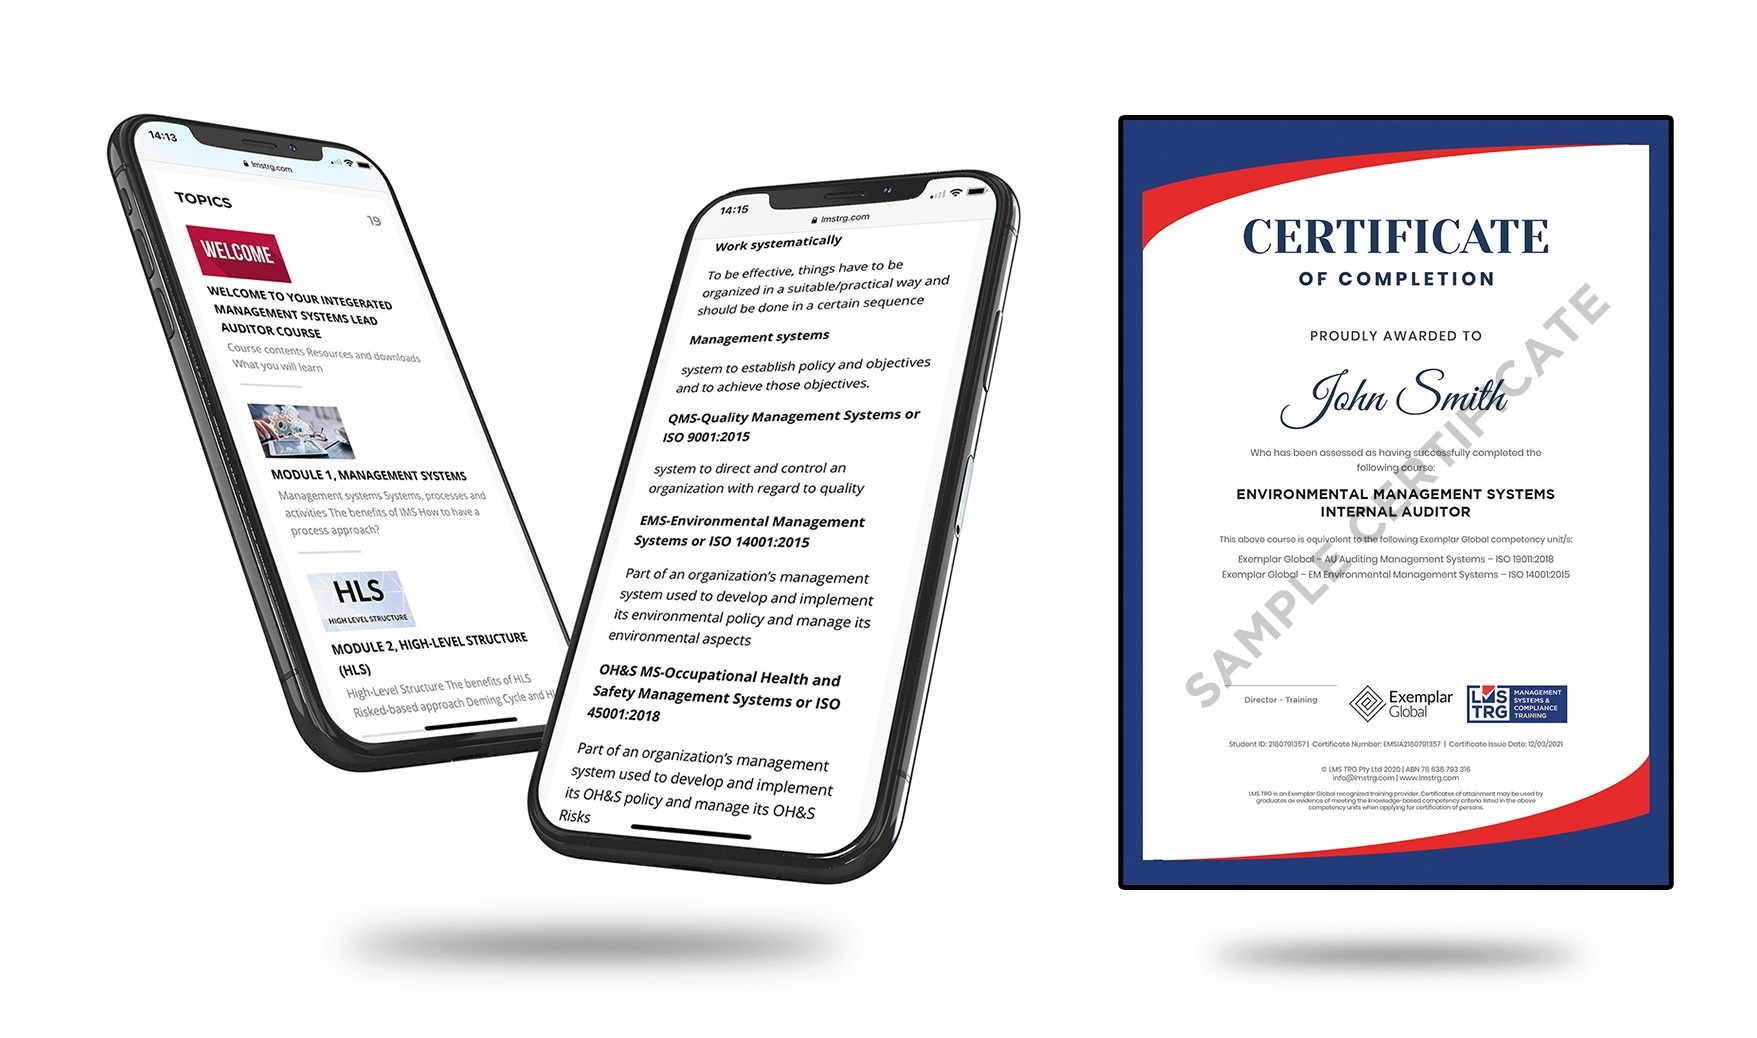 ISO 14001 Environmental Management Systems (EMS) Internal Auditor Certificate